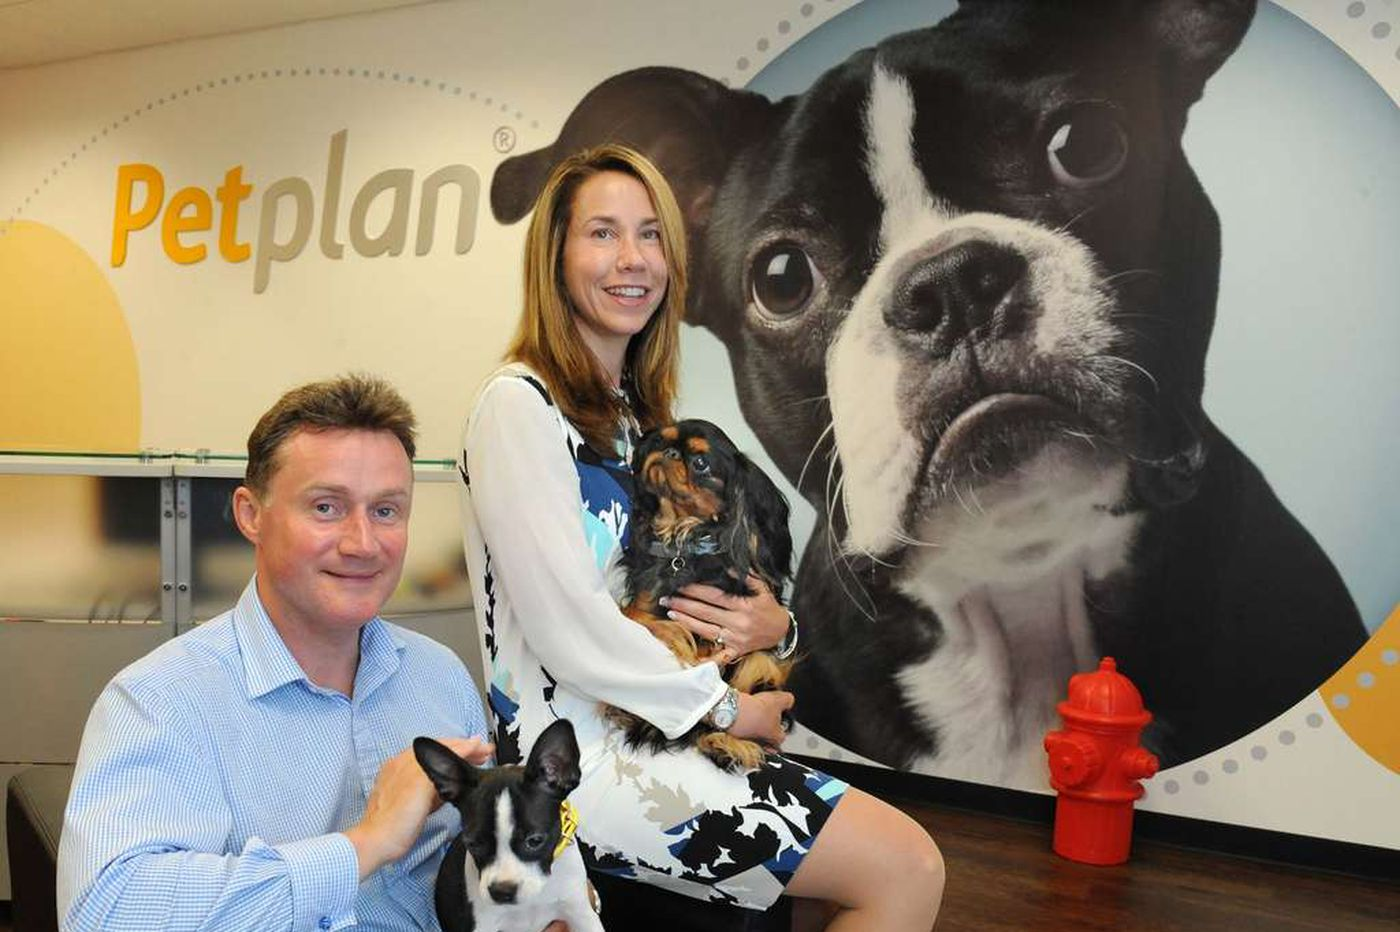 Petplan's married founders say they were fired after she got pregnant again; Investors say sales dragged